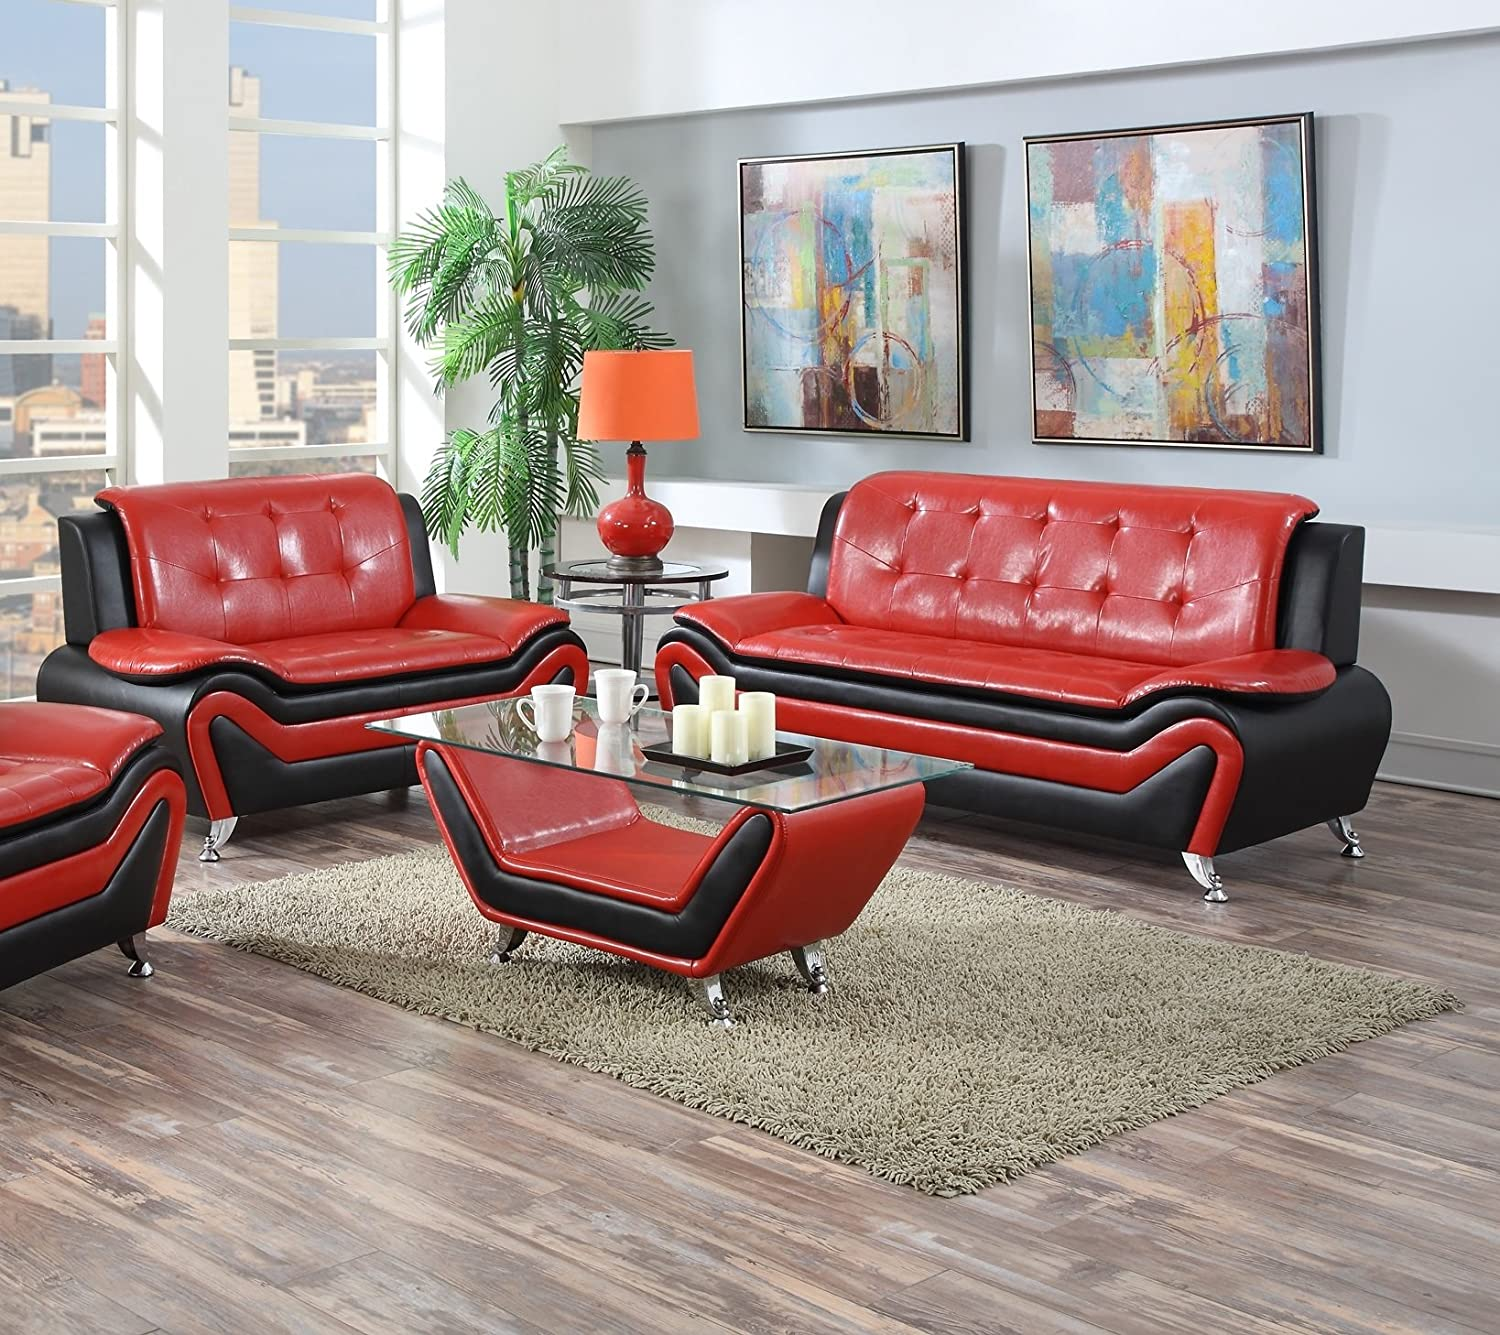 Amazon.com: US Pride Furniture 2 Piece Modern Bonded Leather Sofa Set With  Sofa And Loveseat, Red/Black: Kitchen U0026 Dining